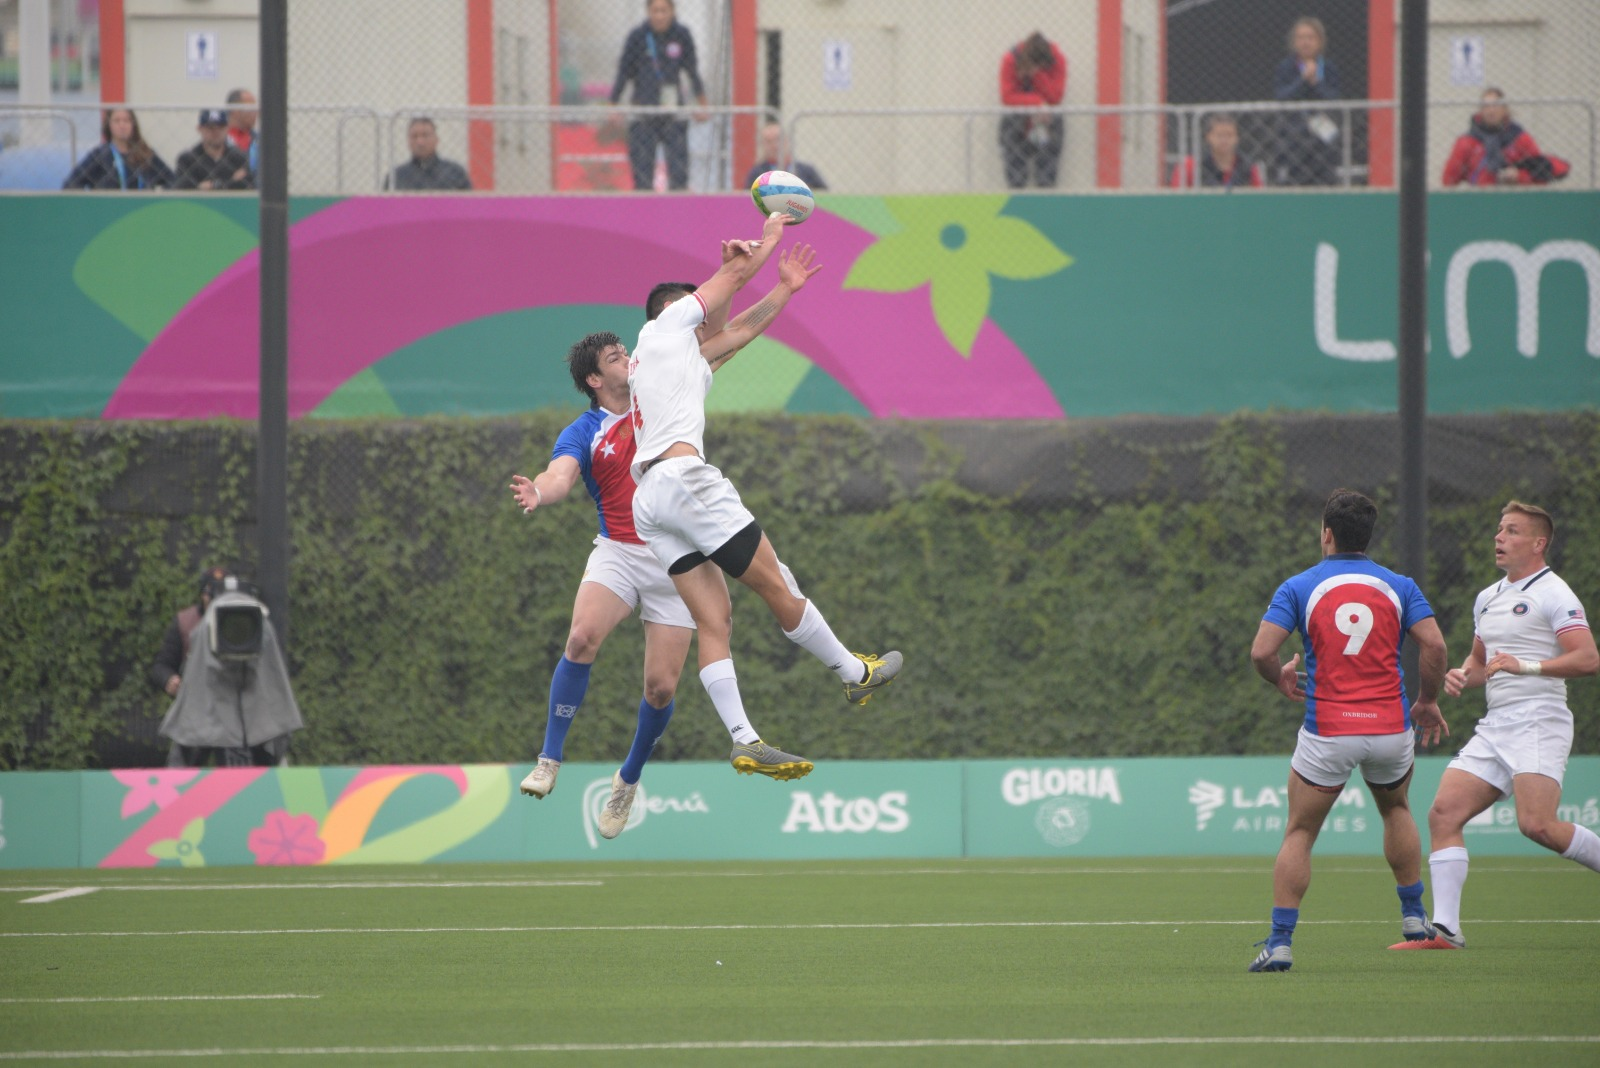 Men's Pan American Games 2019 | Day Two Recap